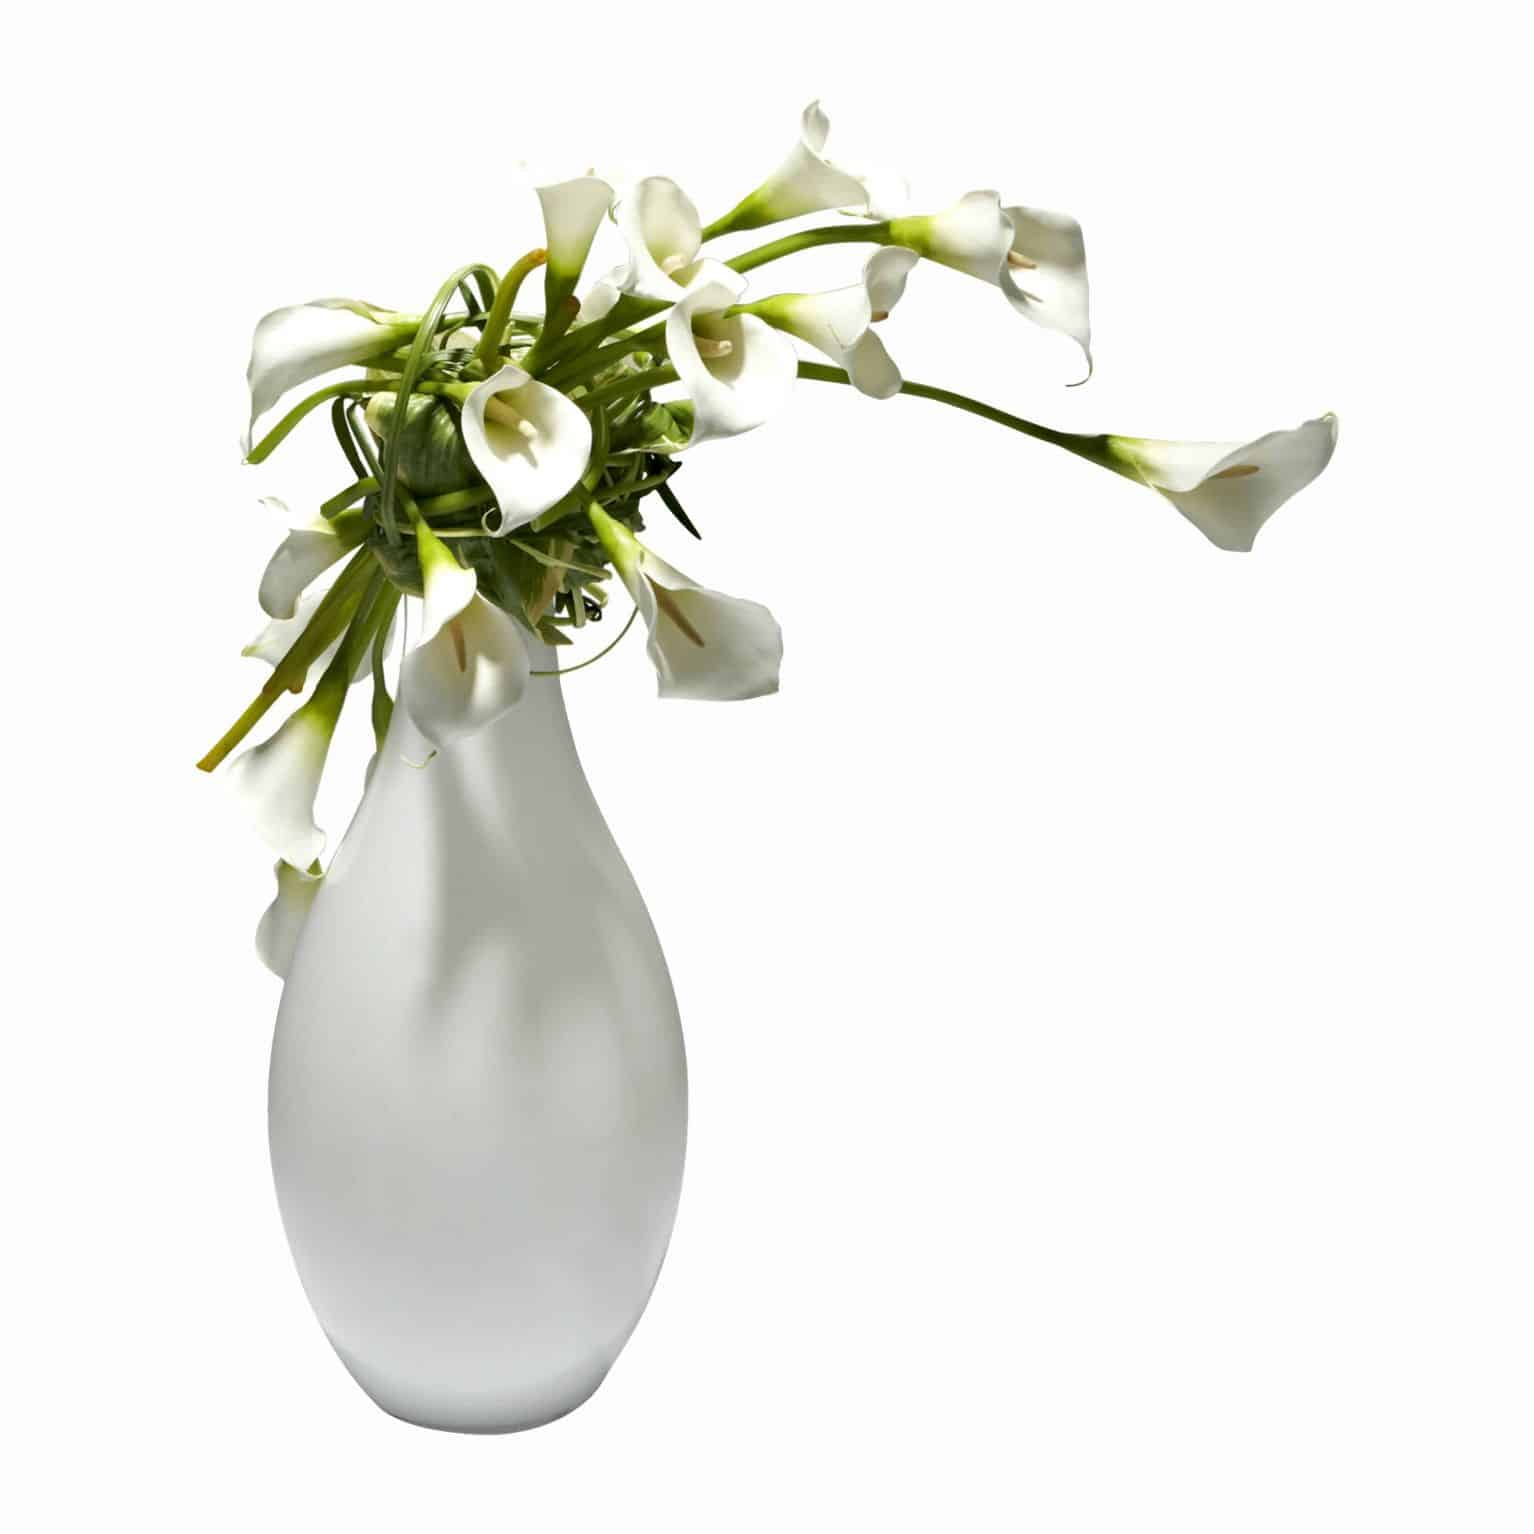 Shop for our modern arrangement of pure white silk calla lily flowers in a white glass vase. Using our immaculate faux calla lilies for this stylish design.